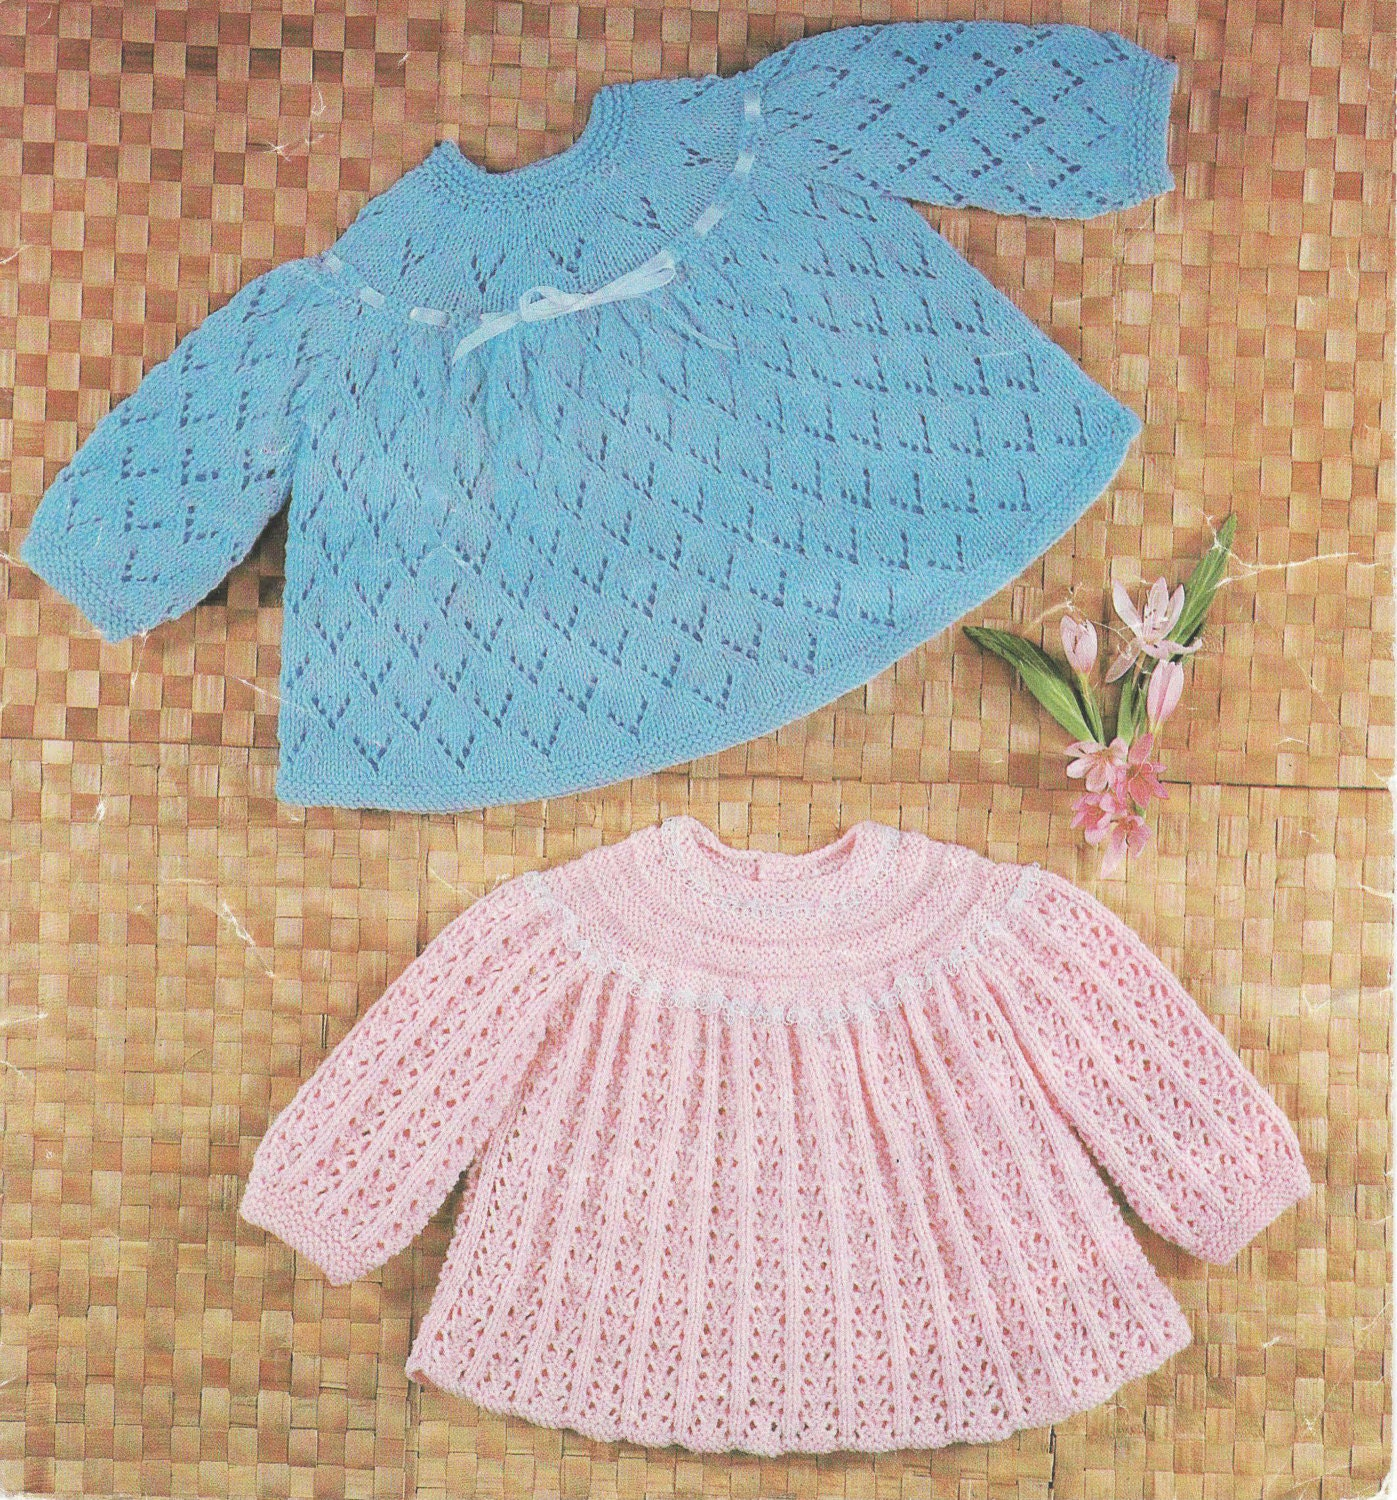 Knitting Pattern Angel Top : Knit Angel Top Vintage Pattern baby dress knitting pullover